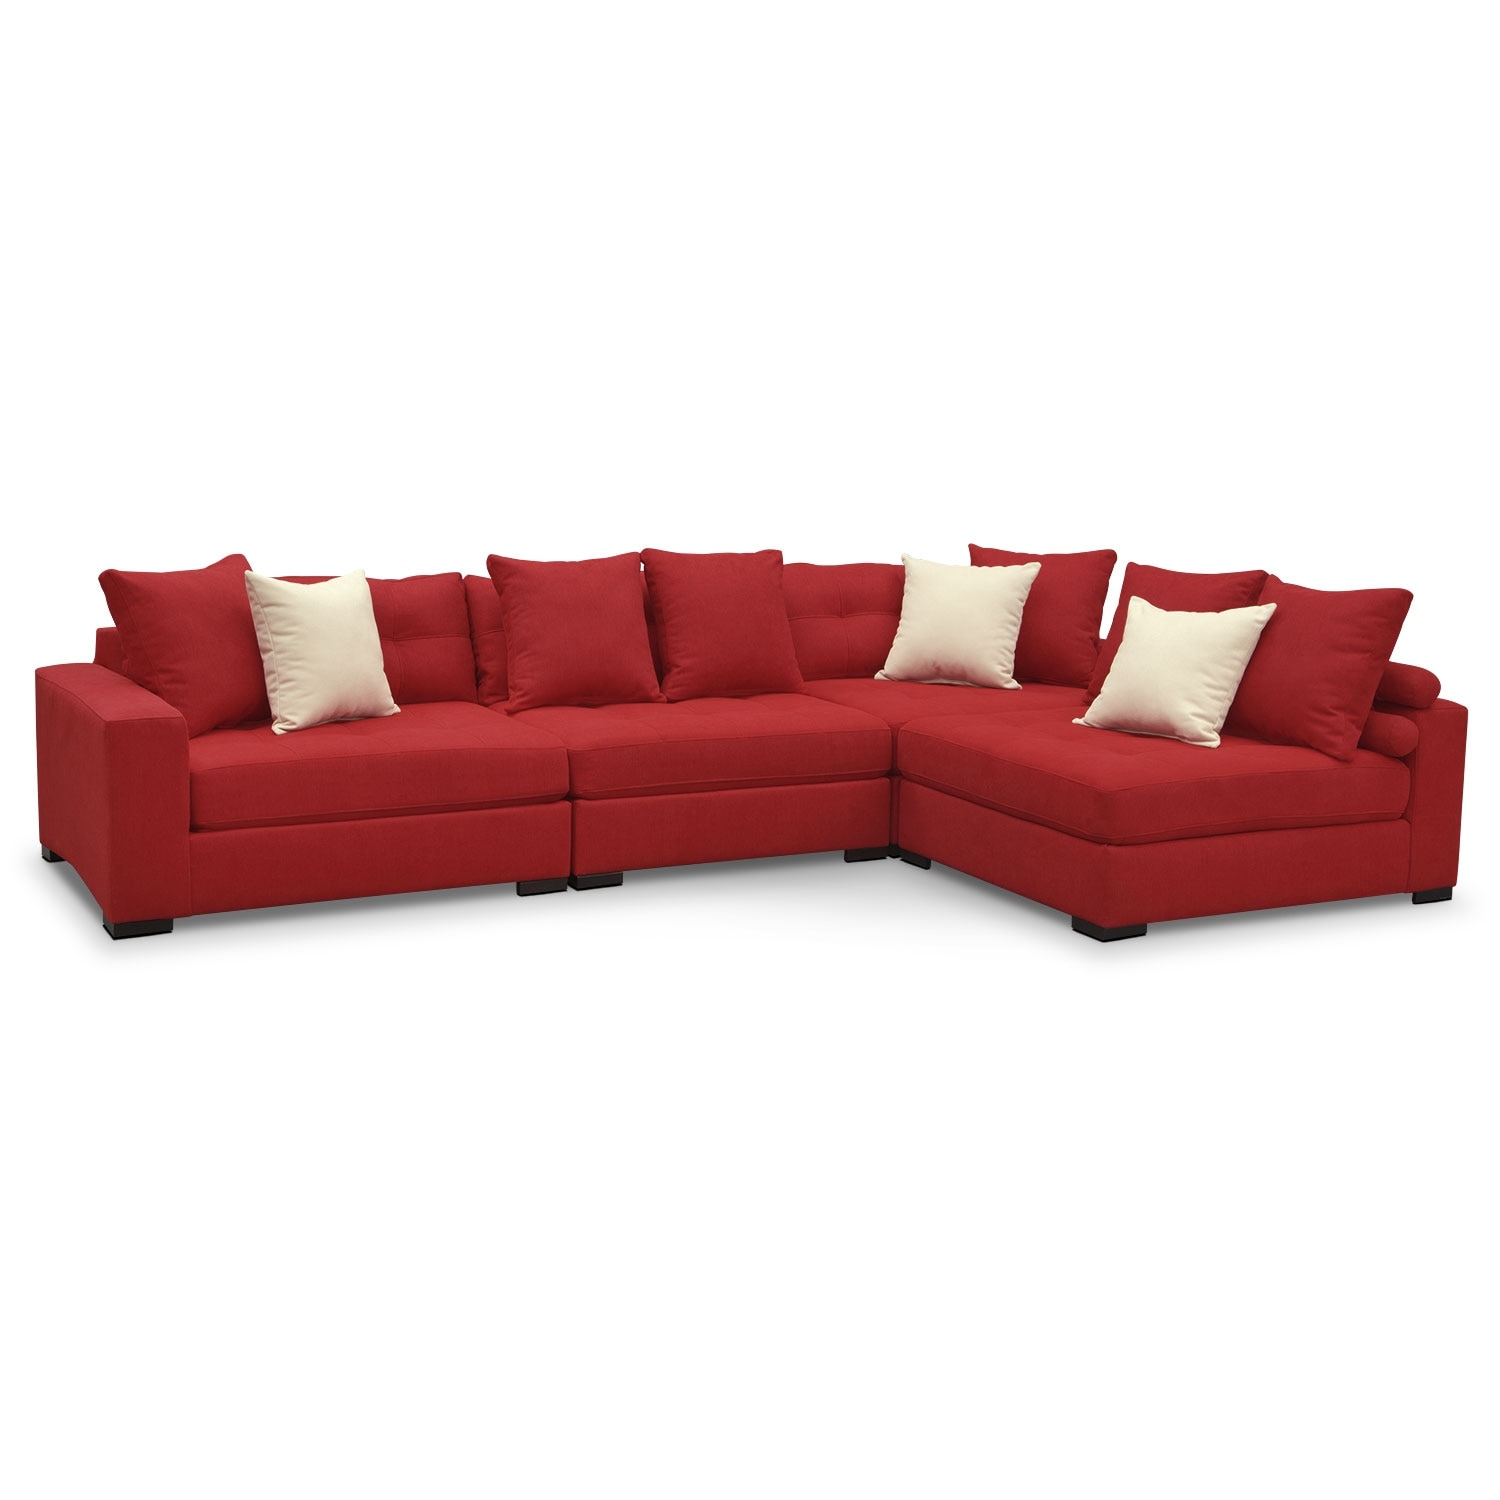 Living Room Furniture - Venti 4-Piece Sectional - Red